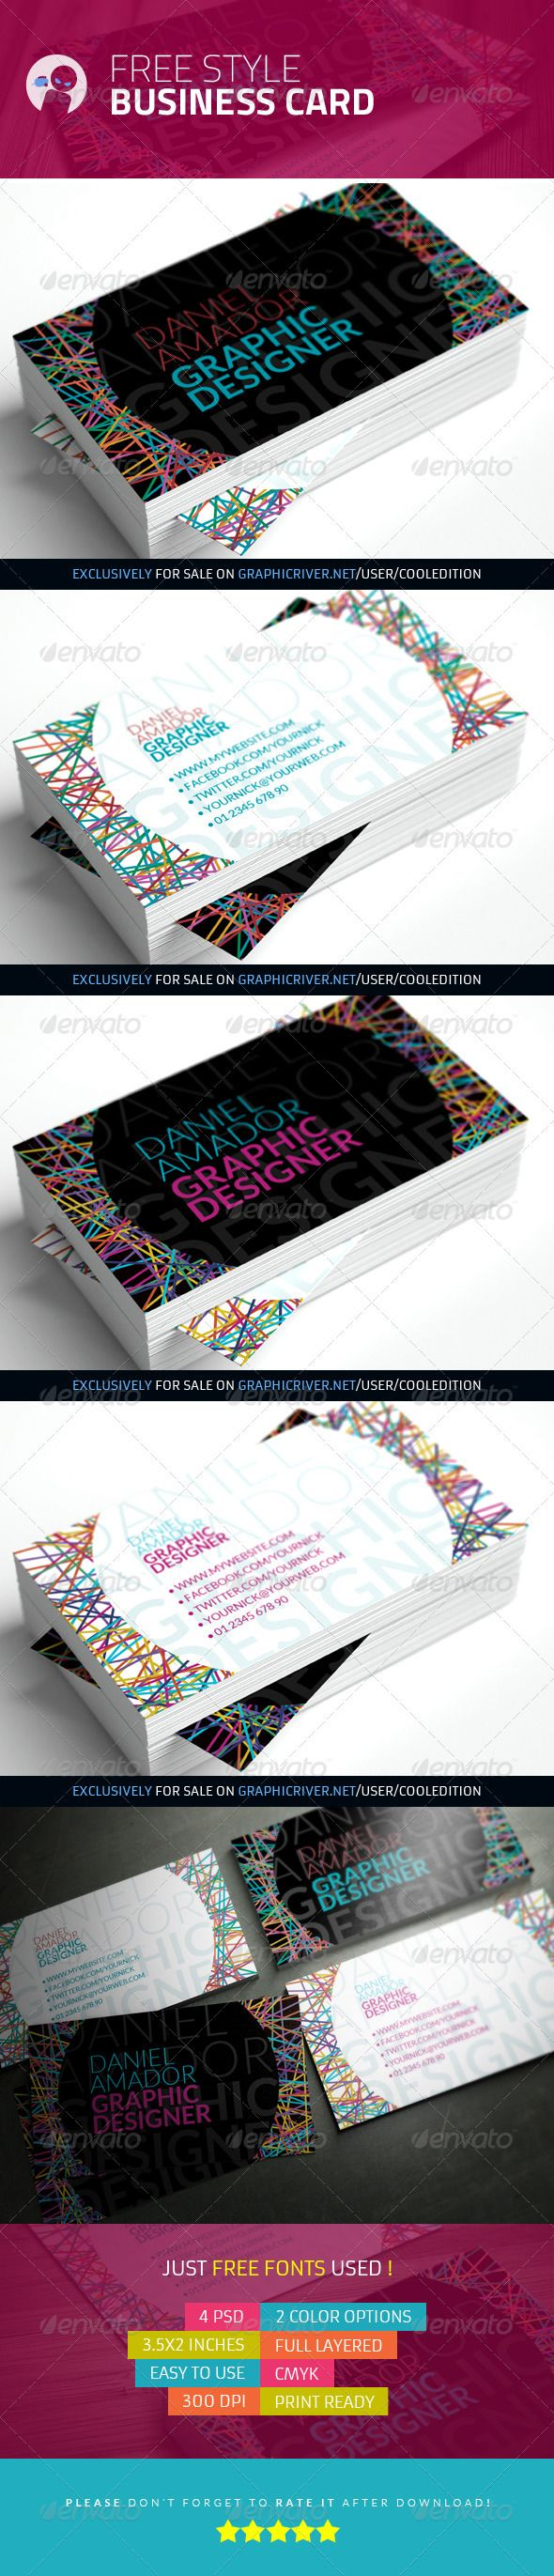 Free Style - Business Card | $6